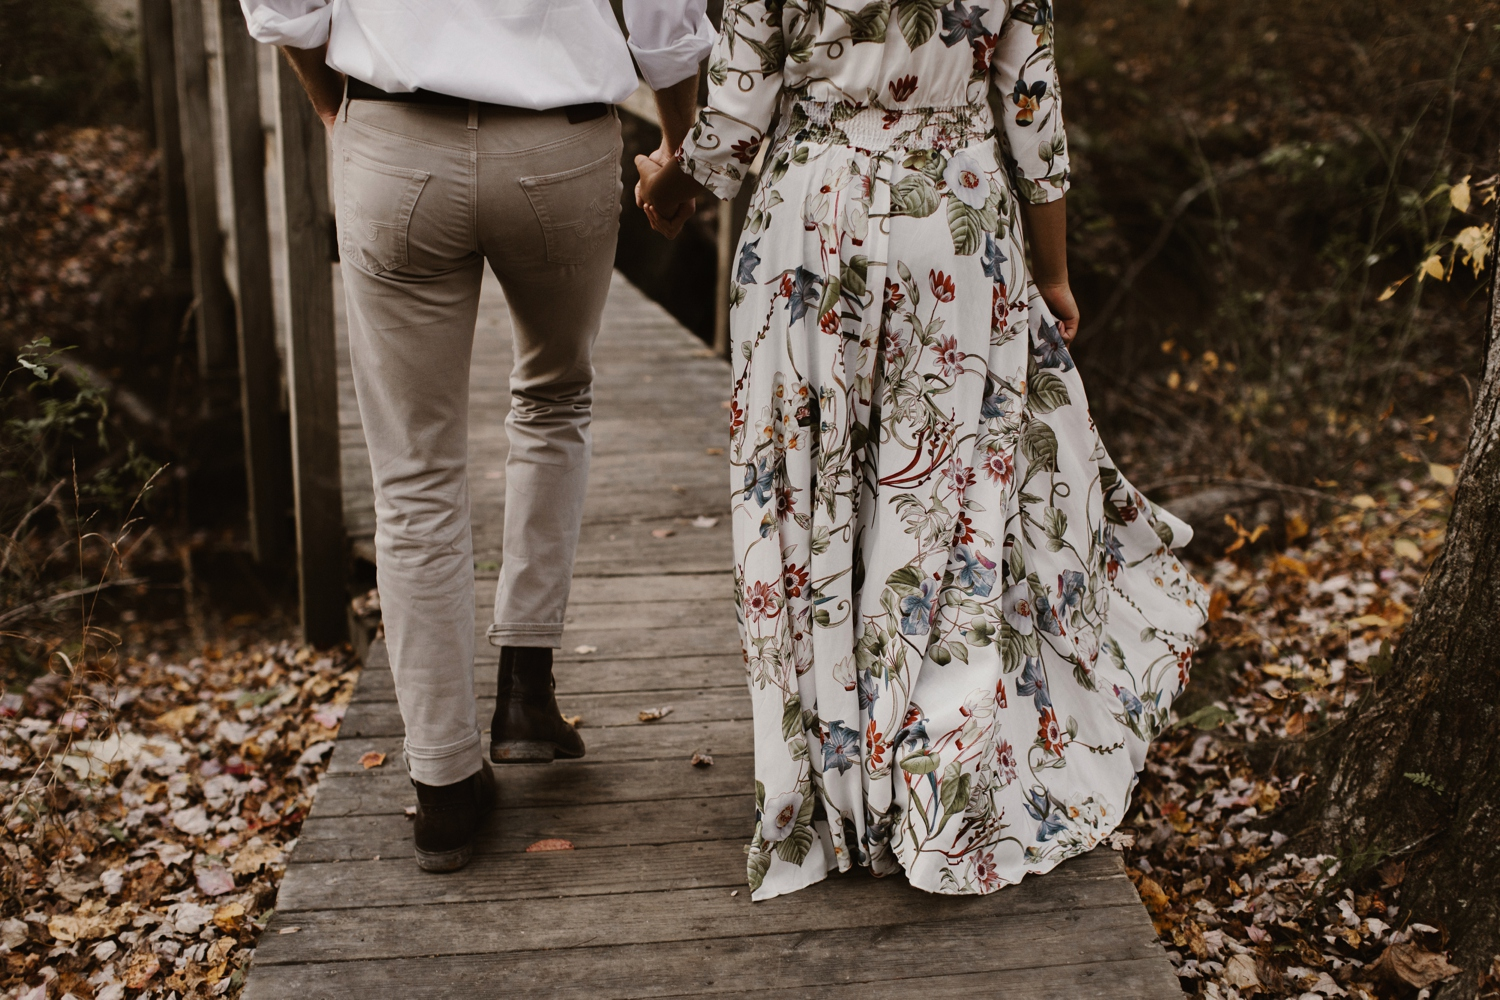 sundas-and-scotts-engagement-45_baltimore-washington-d-c-waterfall-kilgore-engagement-session-maxi-dress-earthy-maryland-wedding-photographer-kate-ann-photography-phot